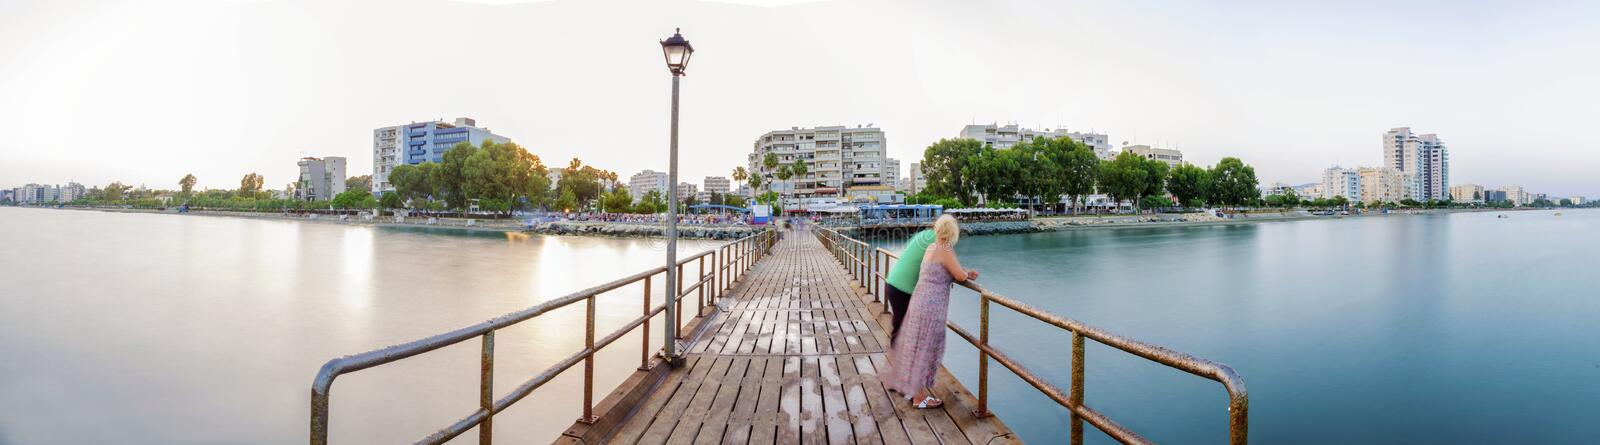 Limassol Skyline, Cyprus royalty free stock photography